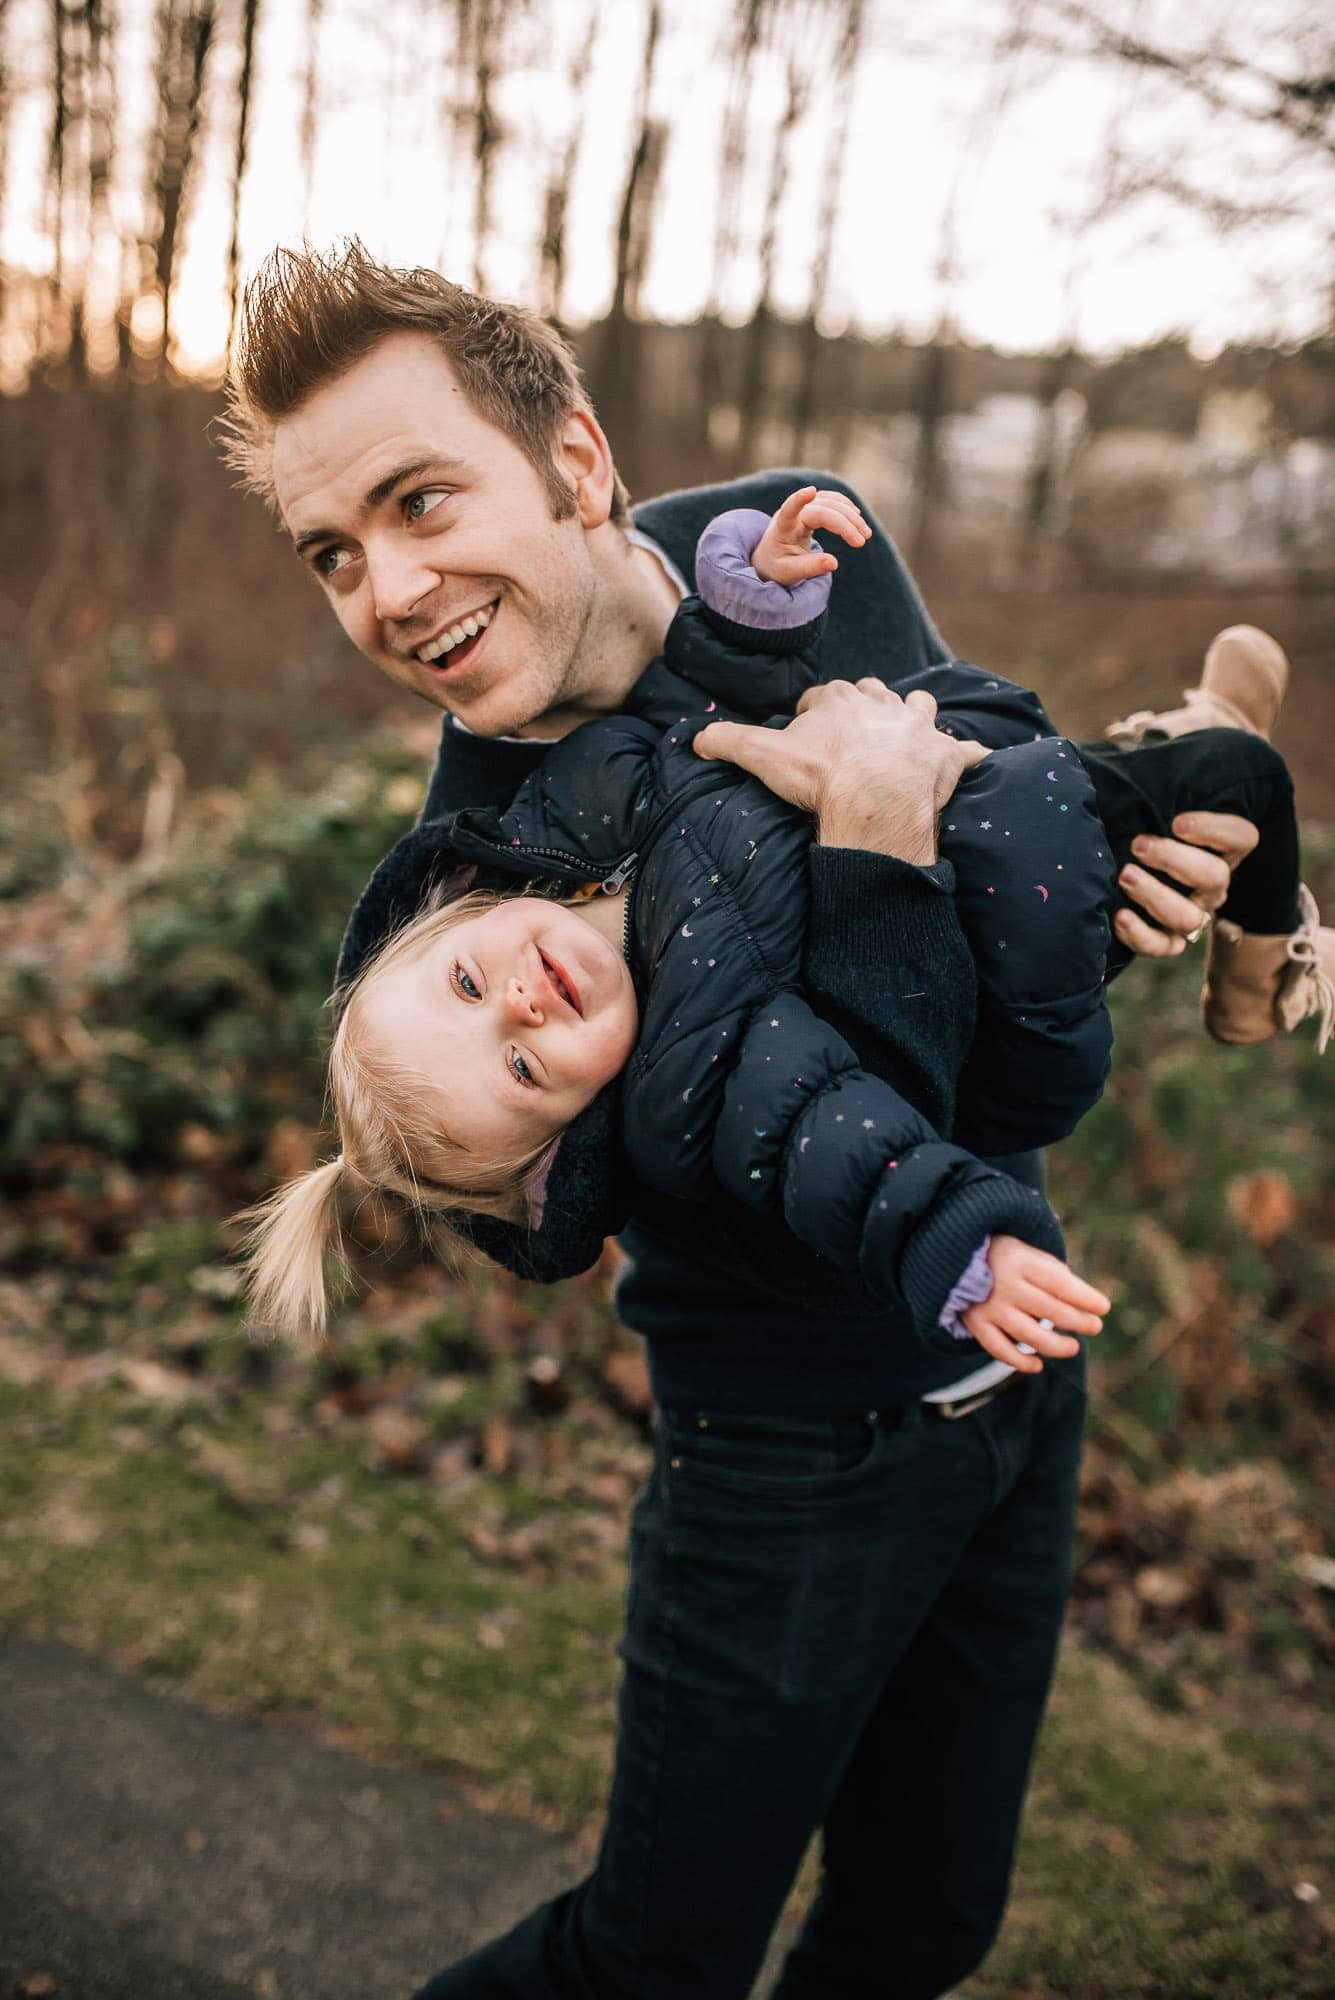 Vancouver Family Photographer captured dad dipping his daughter and laughing